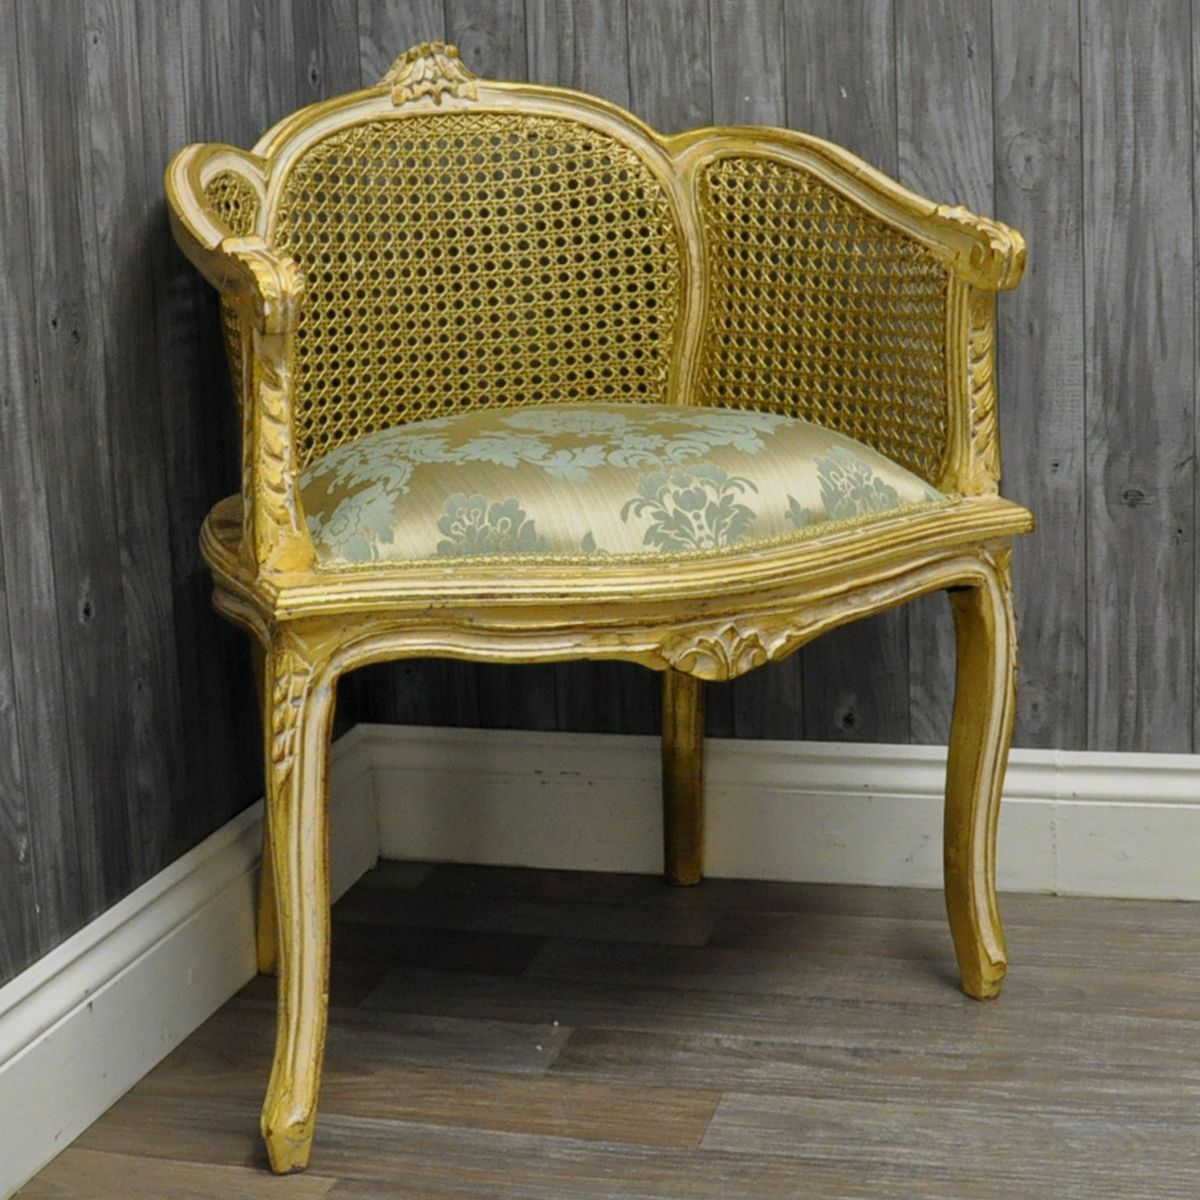 Chair King Houston Antique Gold Finish Wicker Back Louis Chair Upholstered